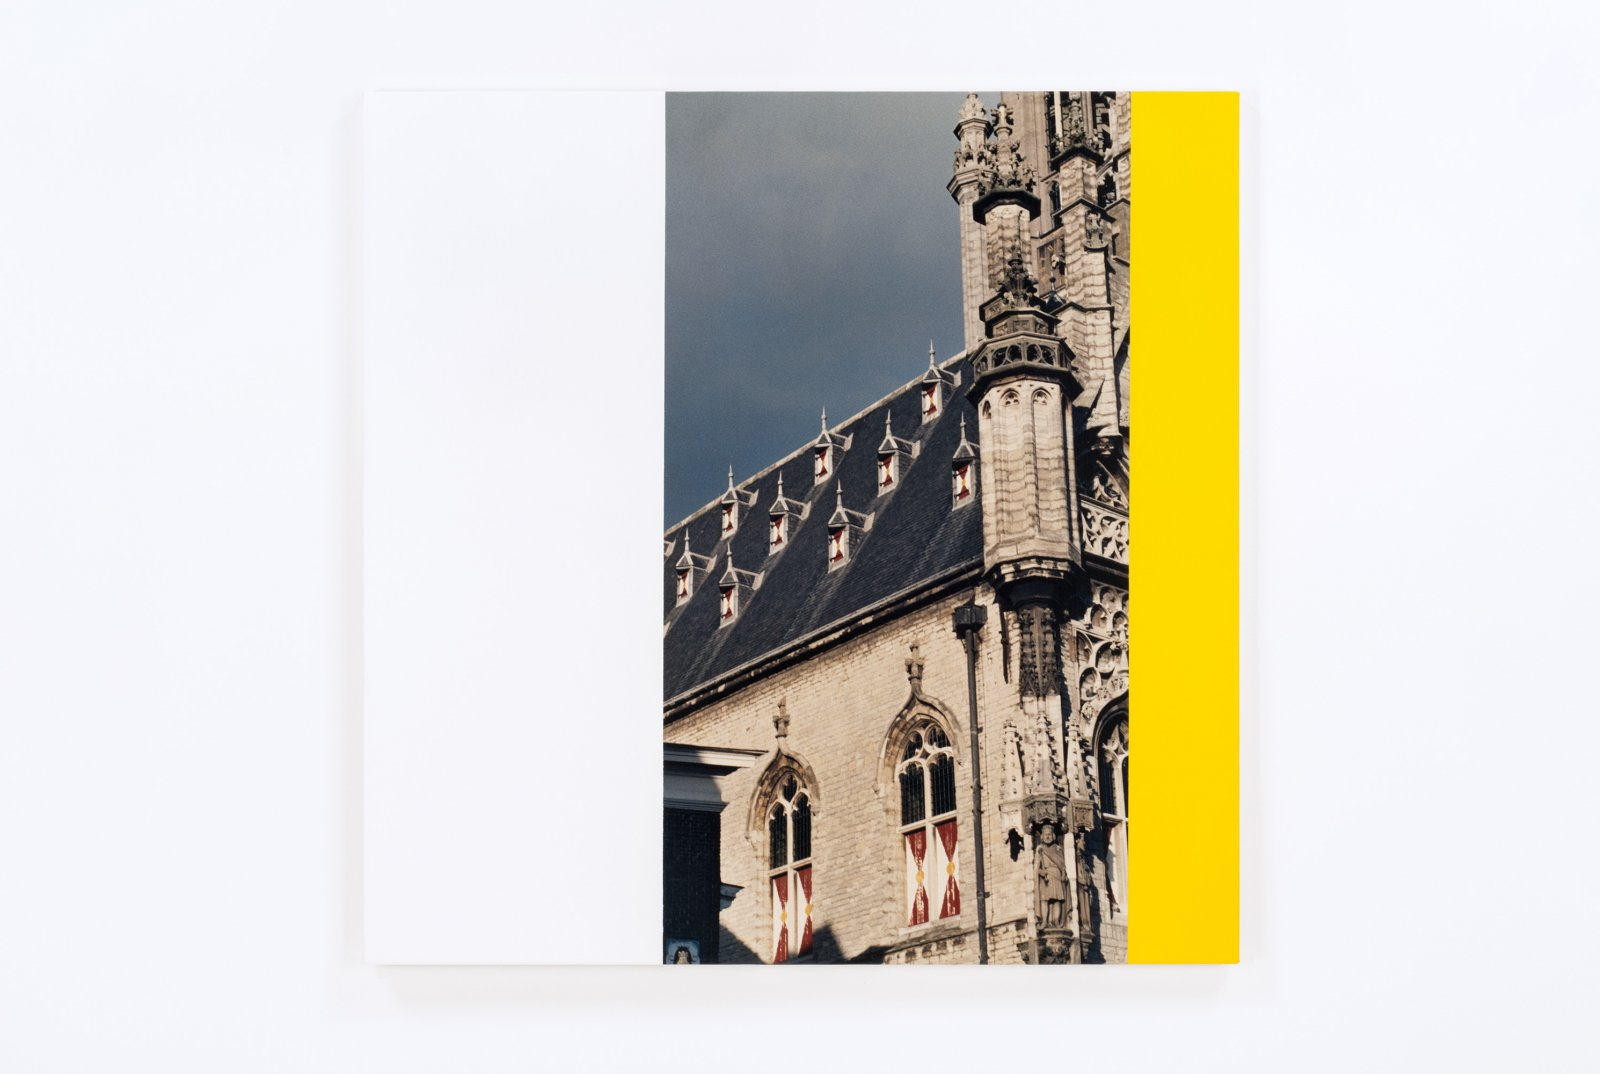 Ian Wallace,Hommage a Mondrian X(City Hall Tower, Middleburg), 1990, photolaminate and acrylic on canvas, 48 x 48 in. (122 x 122 cm)